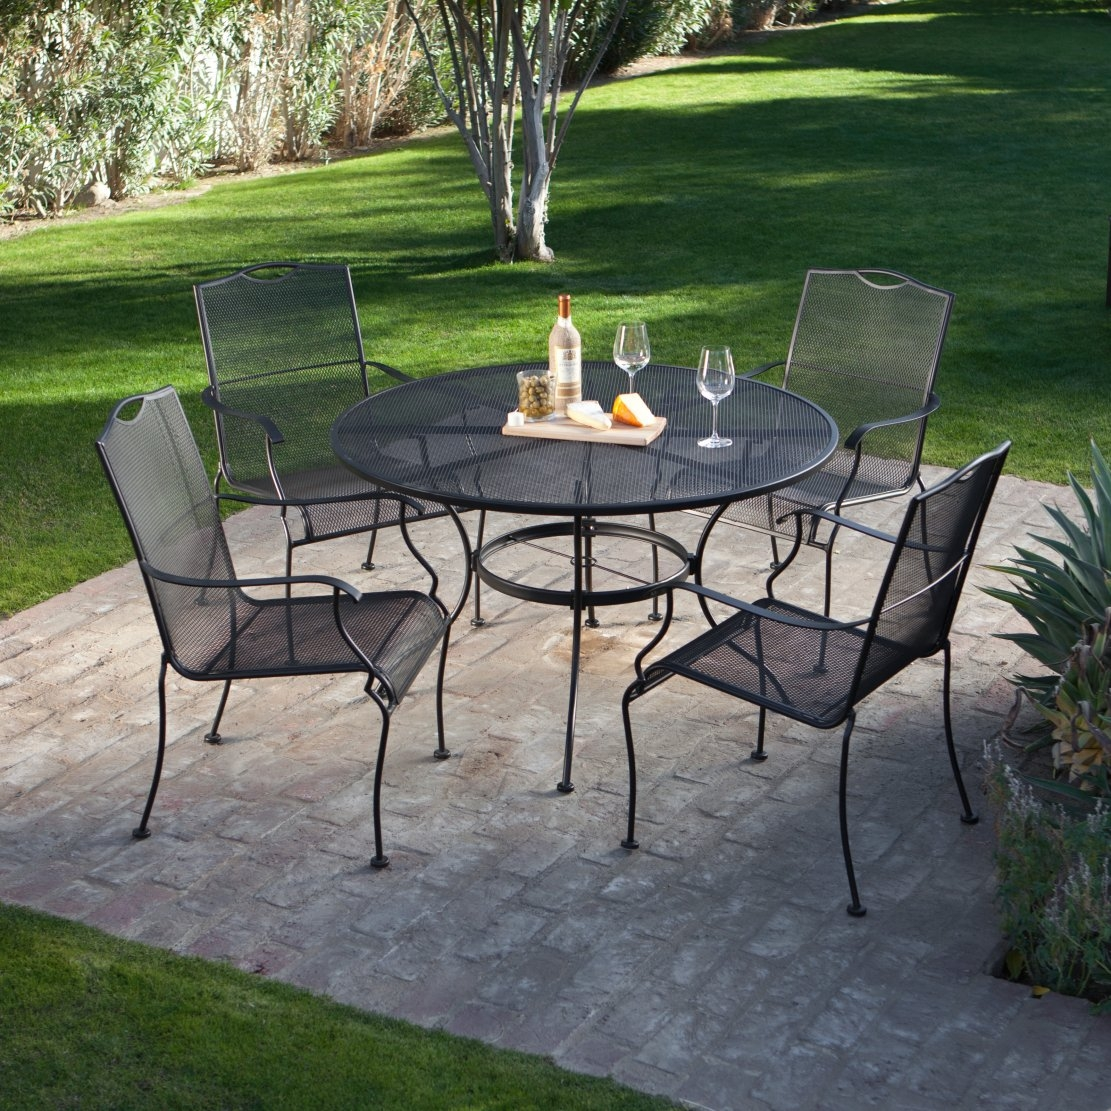 5-piece wrought iron patio furniture dining set - seats 4 KXJGASN